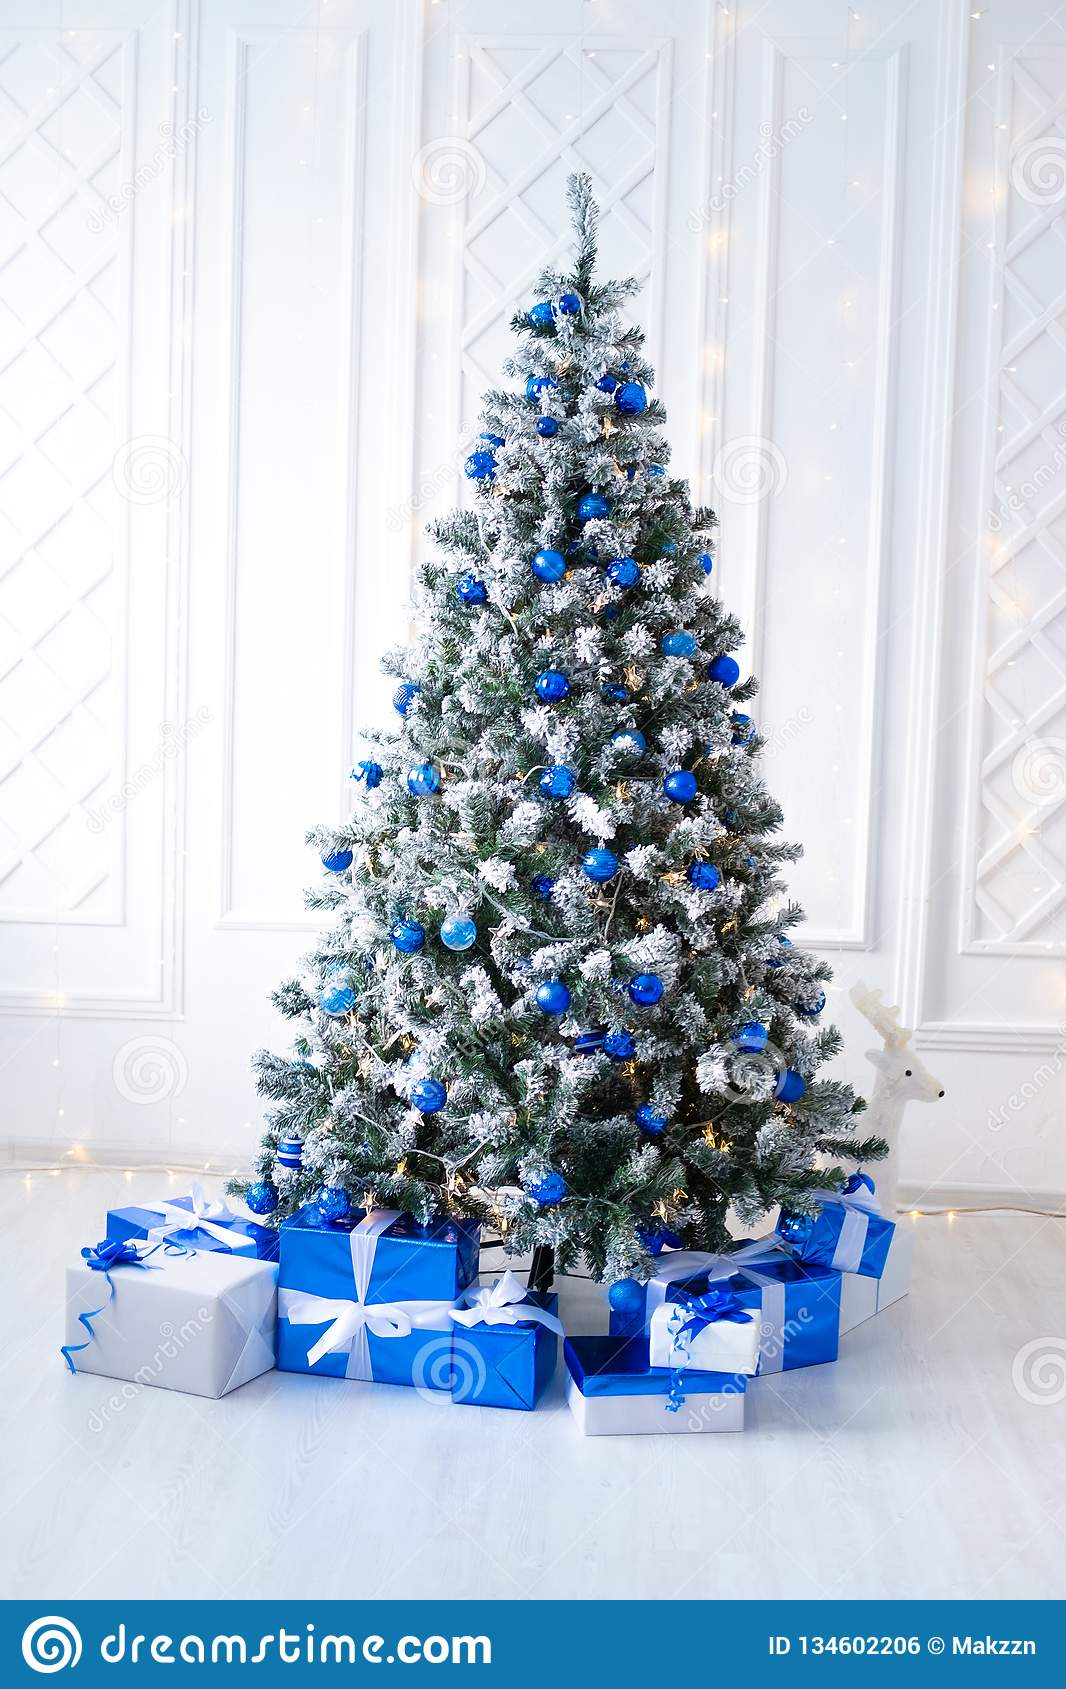 Artificial White Christmas Tree On White Decorated With Blue Ornaments And Garland Modern Christmas Interior Stock Photo Image Of Celebration Christmas 134602206